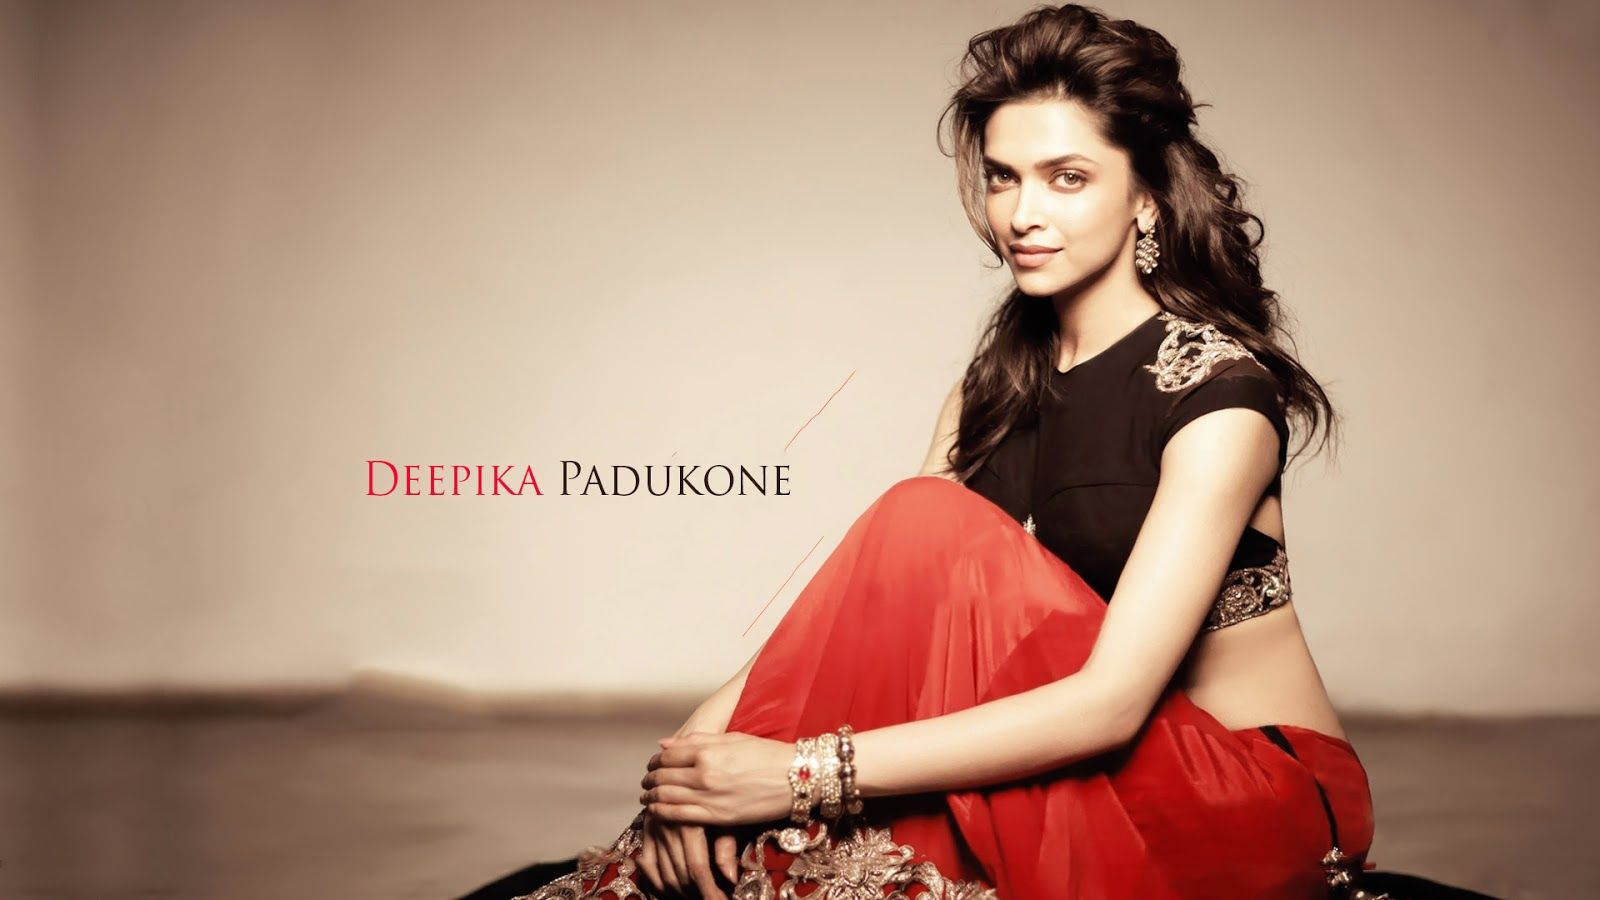 Deepika Padukone Wallpapers Hd Download Free 1080p Deepika Padukone Indian Celebrities Indian Fashion